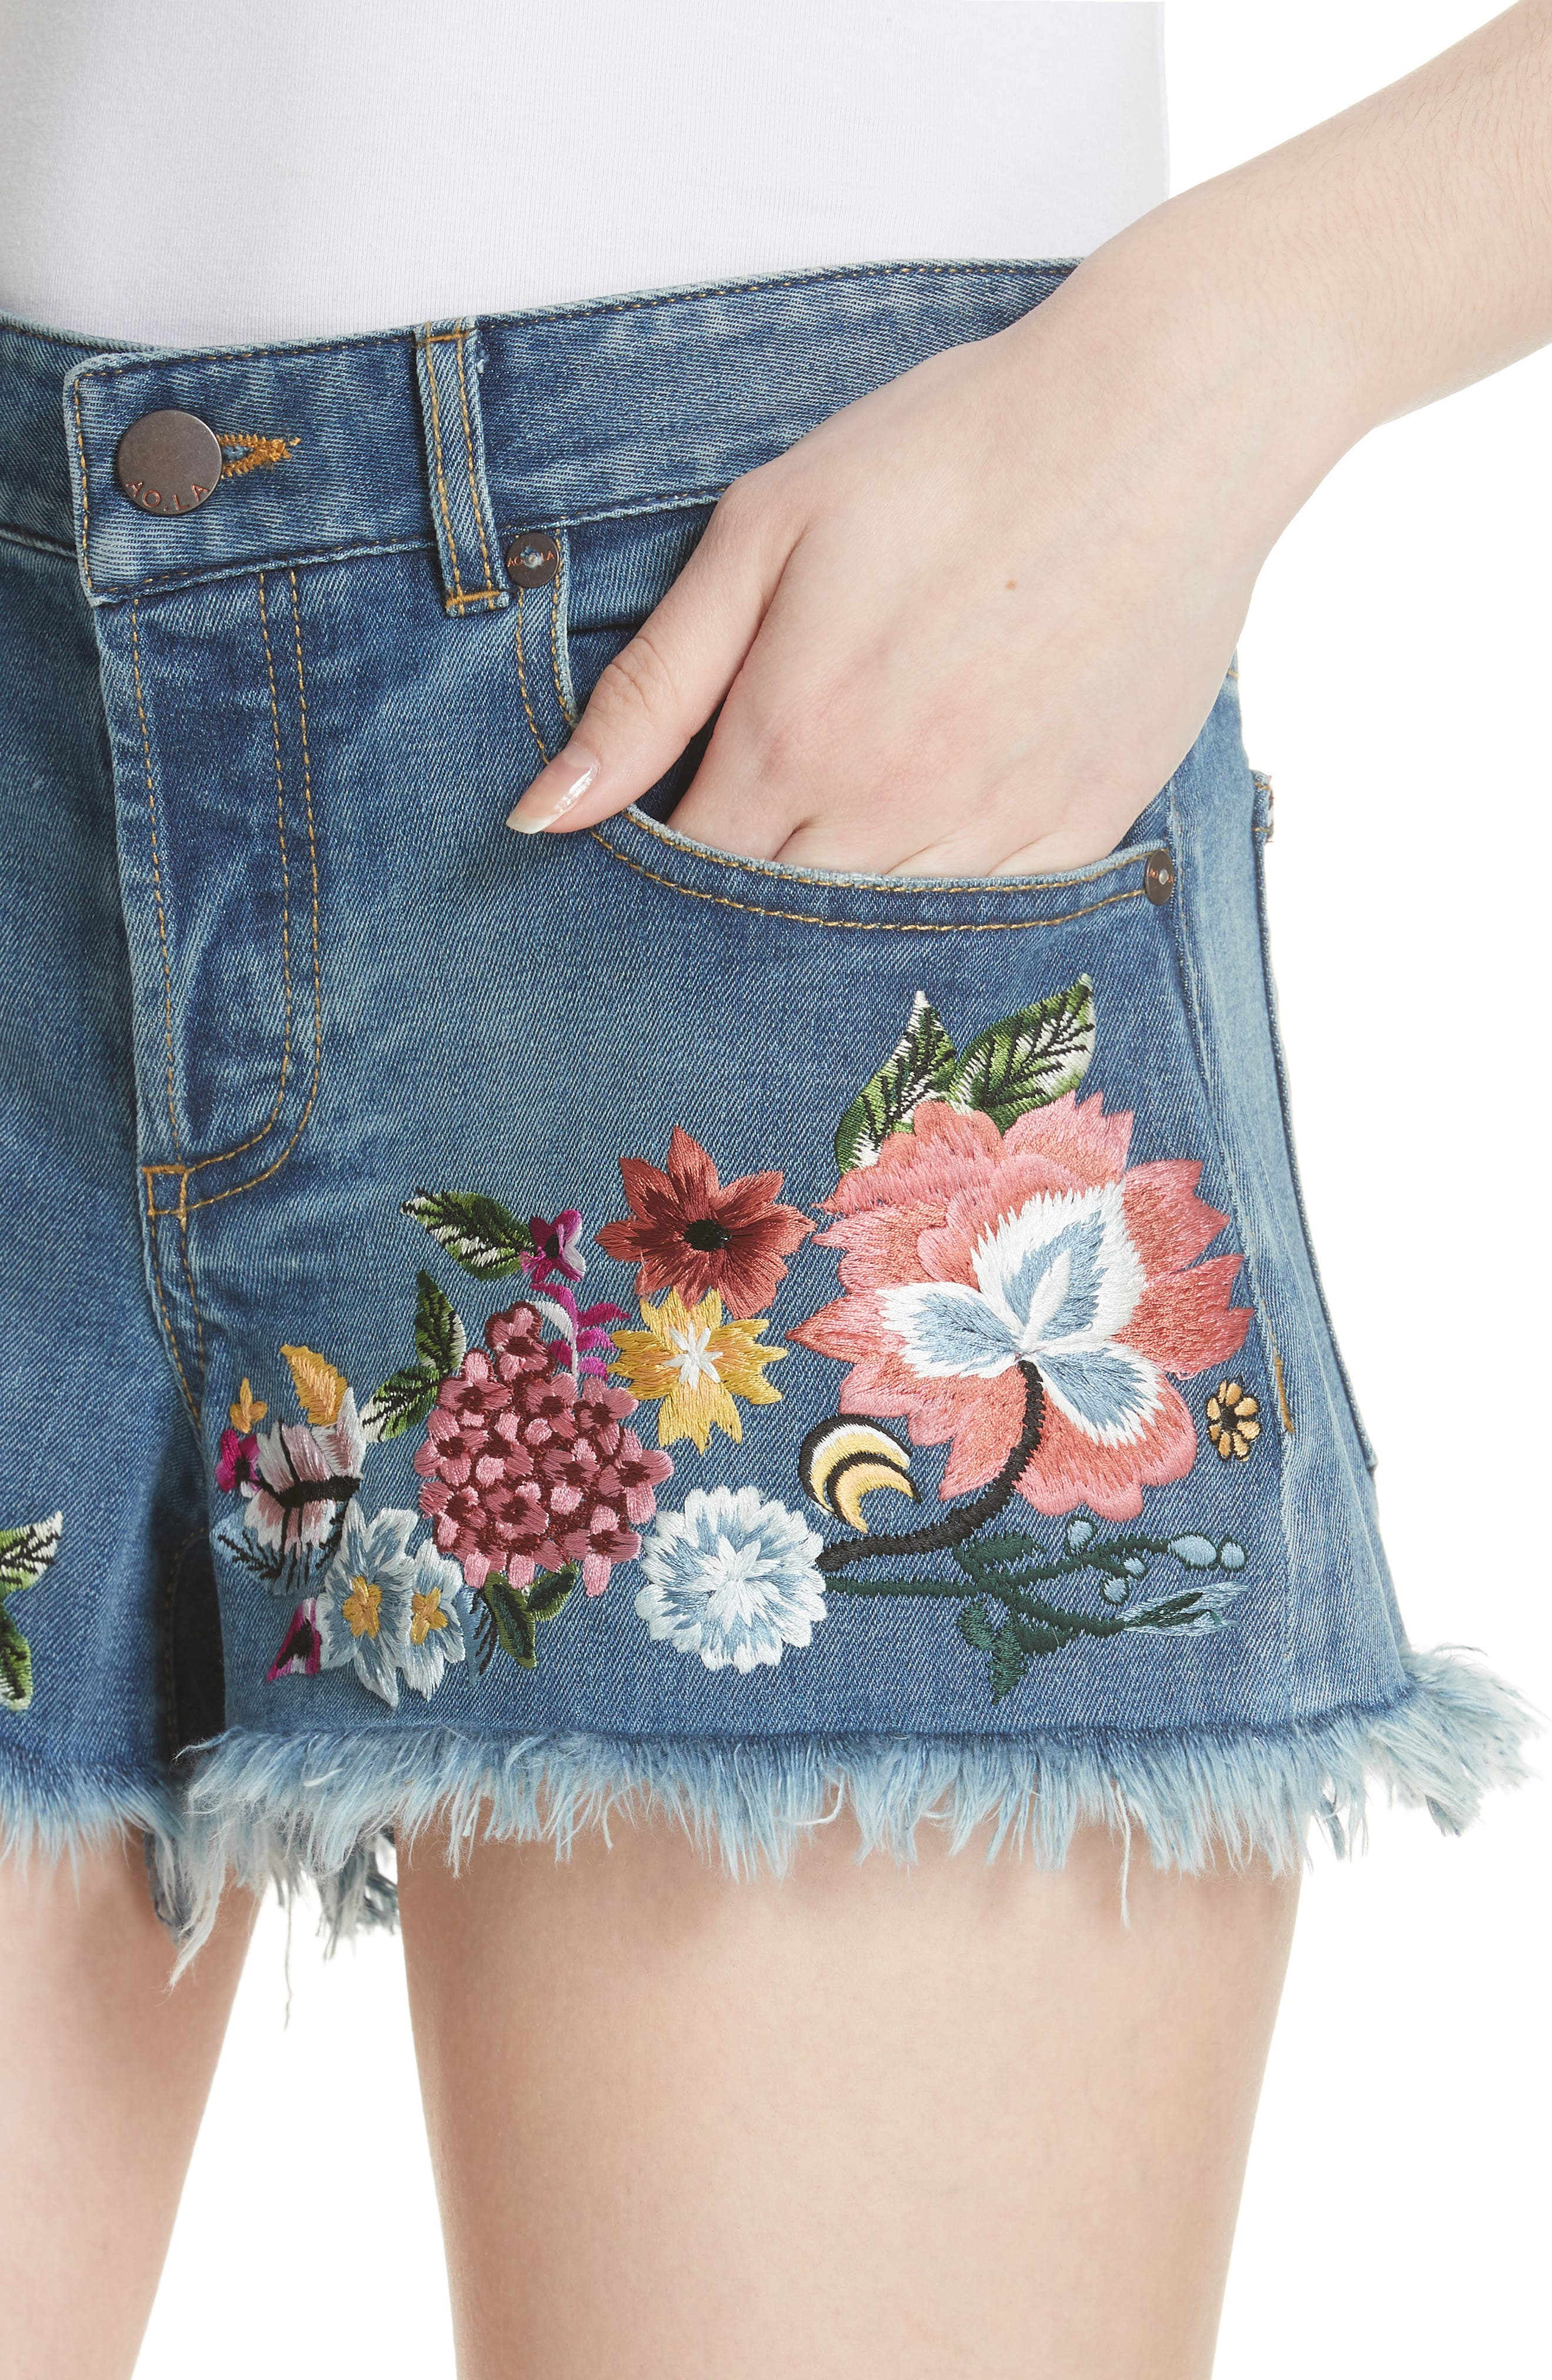 ALICE + OLIVIA JEANS,                             Embroidered Denim Shorts,                             Alternate thumbnail 4, color,                             460